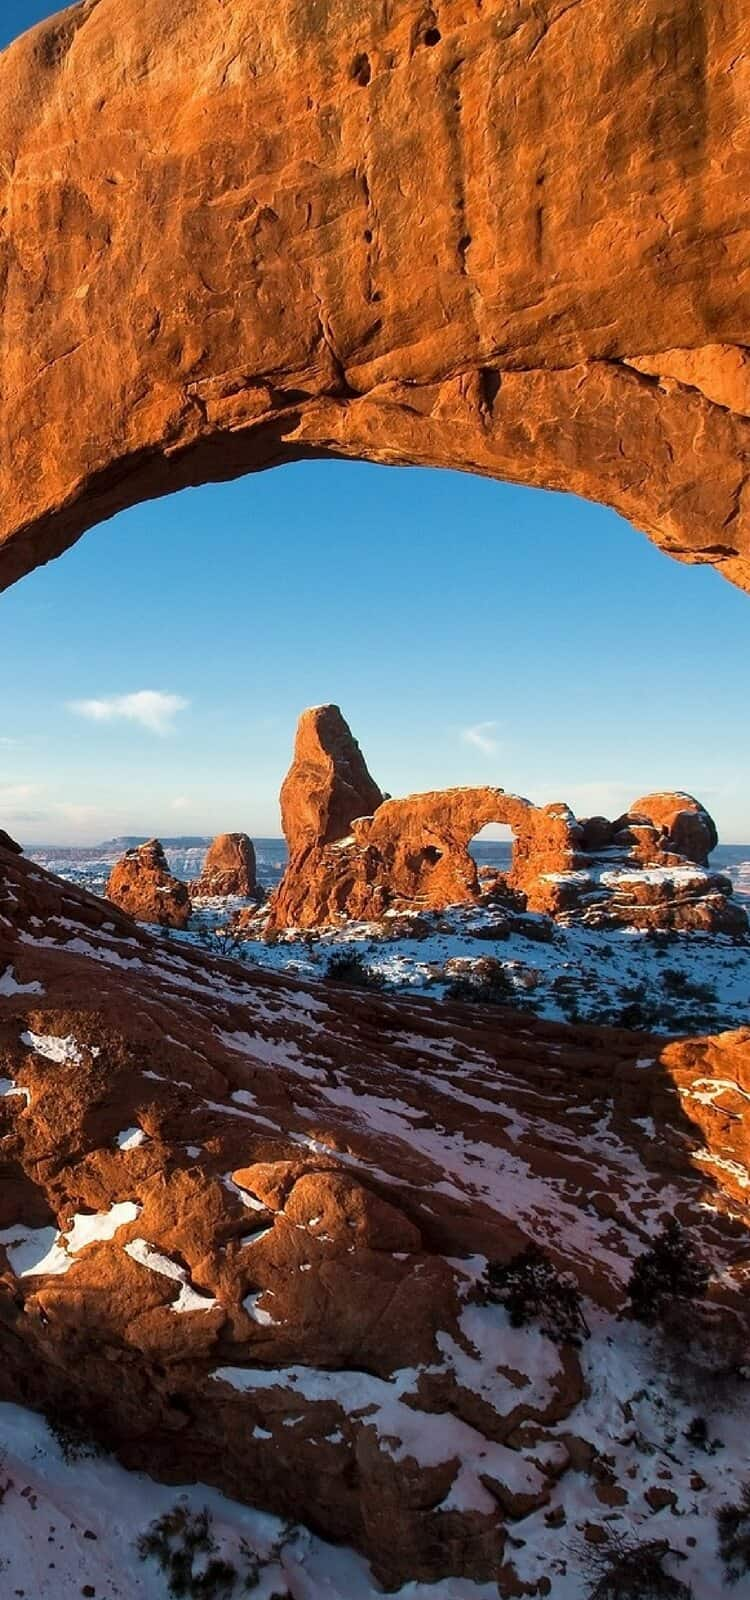 Arches National Park Hikes & Travel Guide